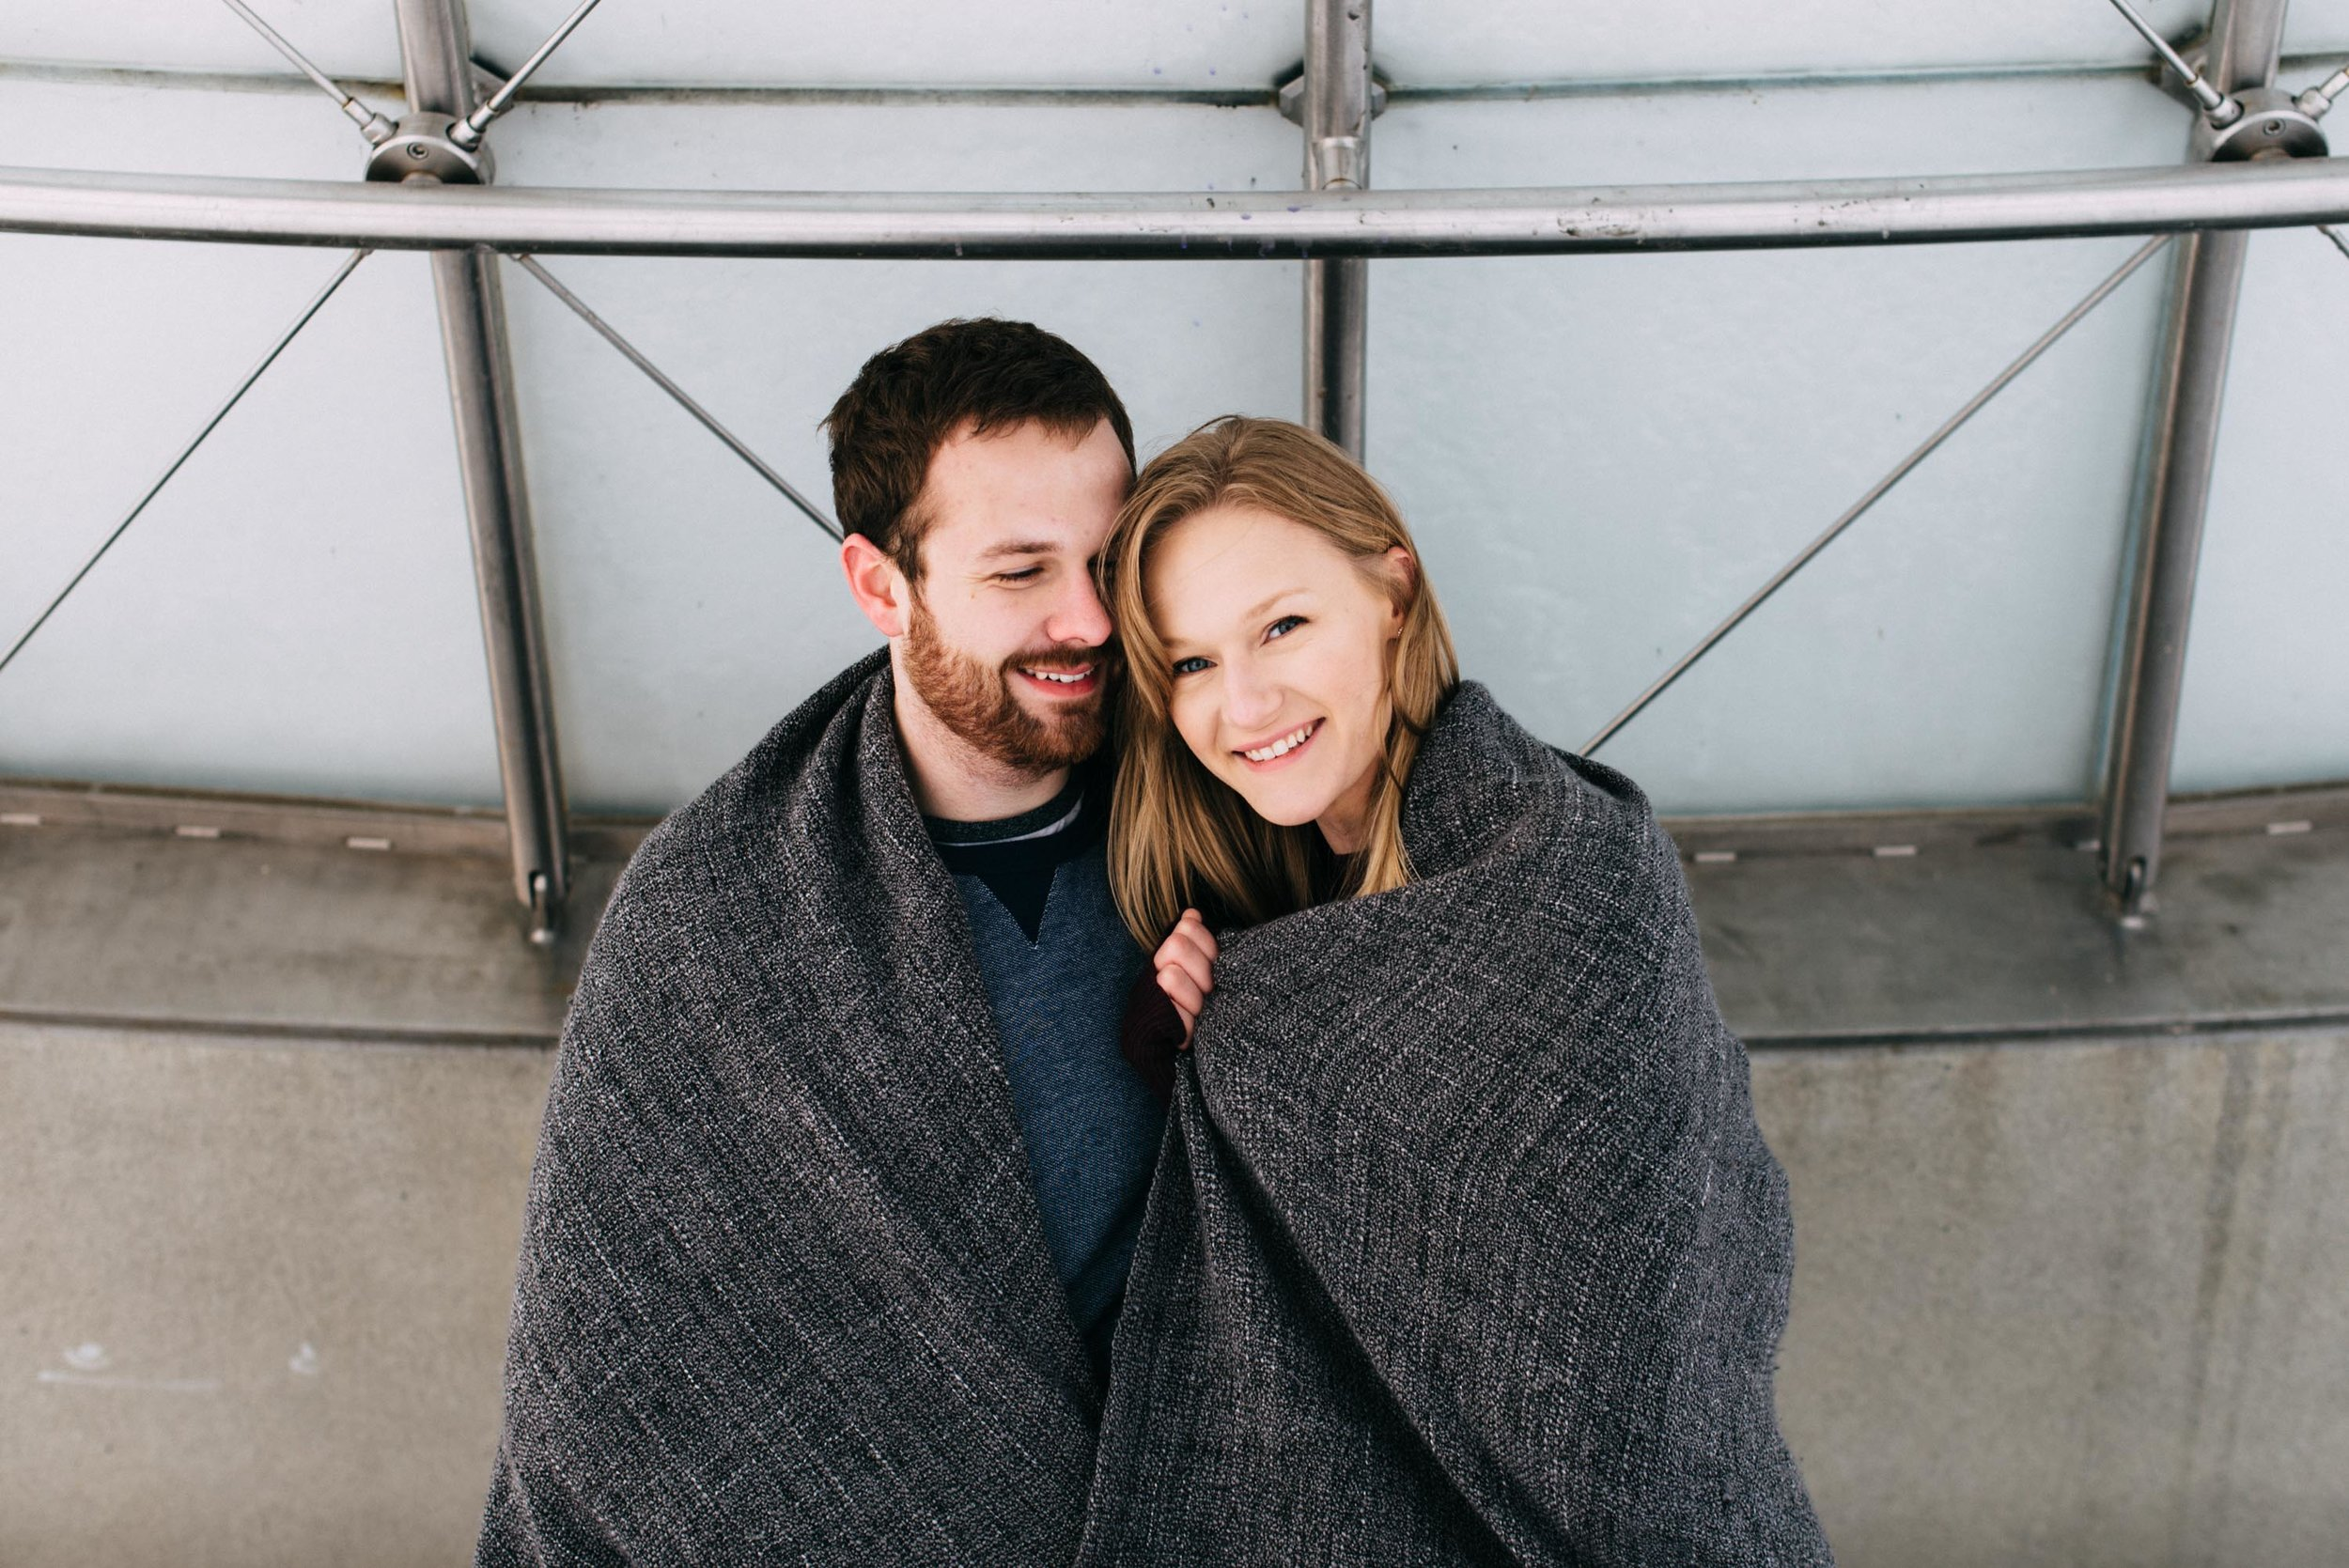 Cody_Mary_Saint_Paul_Winter_Engagement-4.jpg